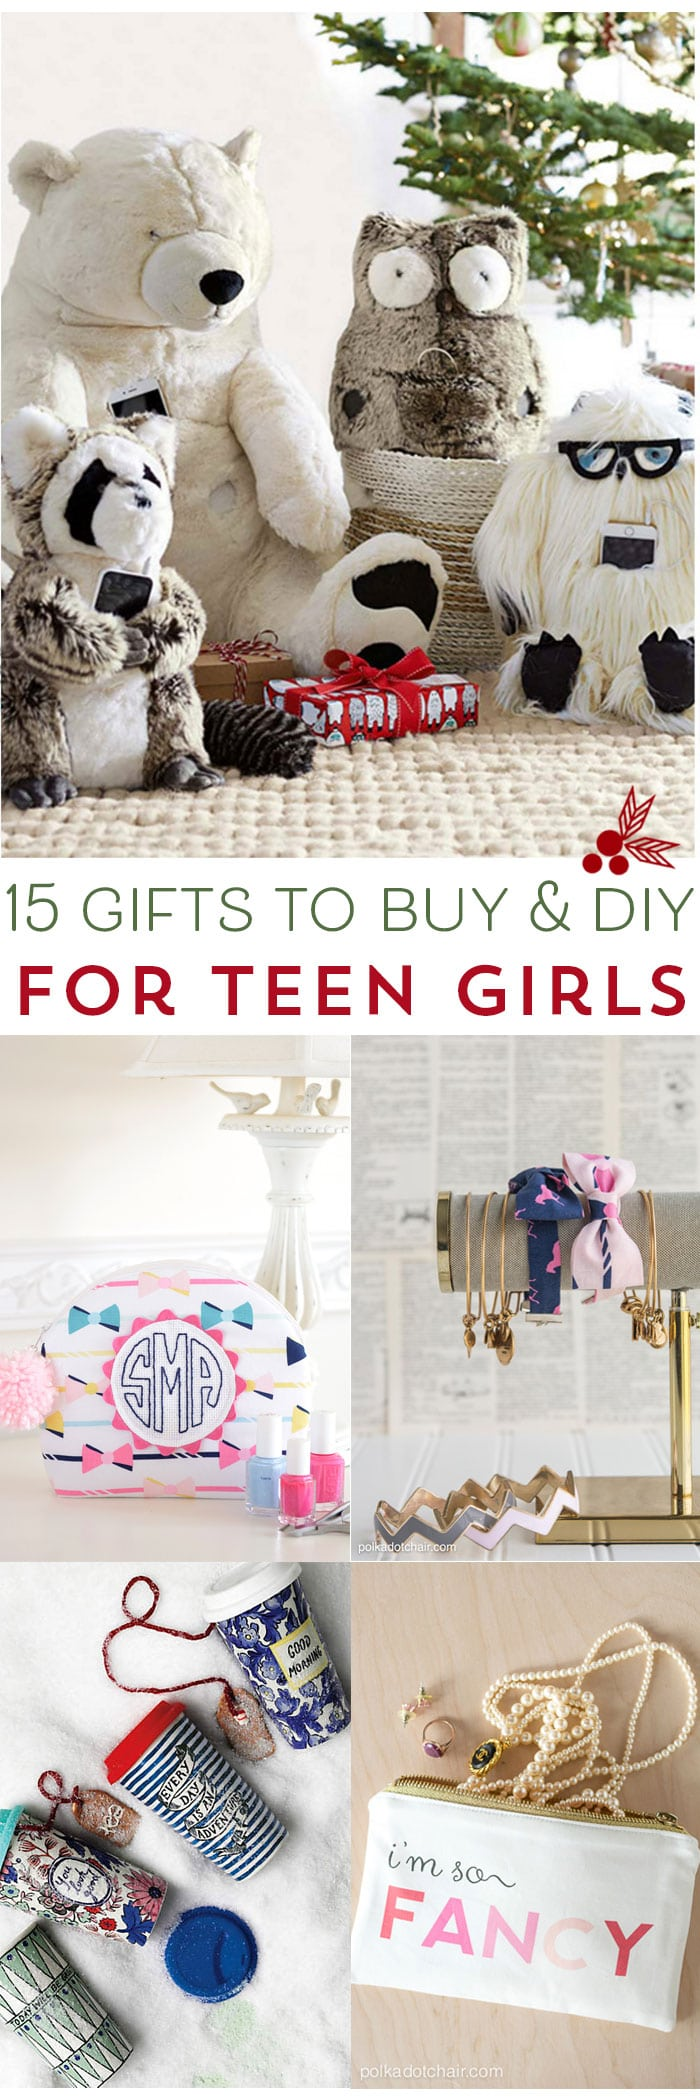 15 Gifts for Teen Girls to DIY and Buy - The Polka Dot Chair